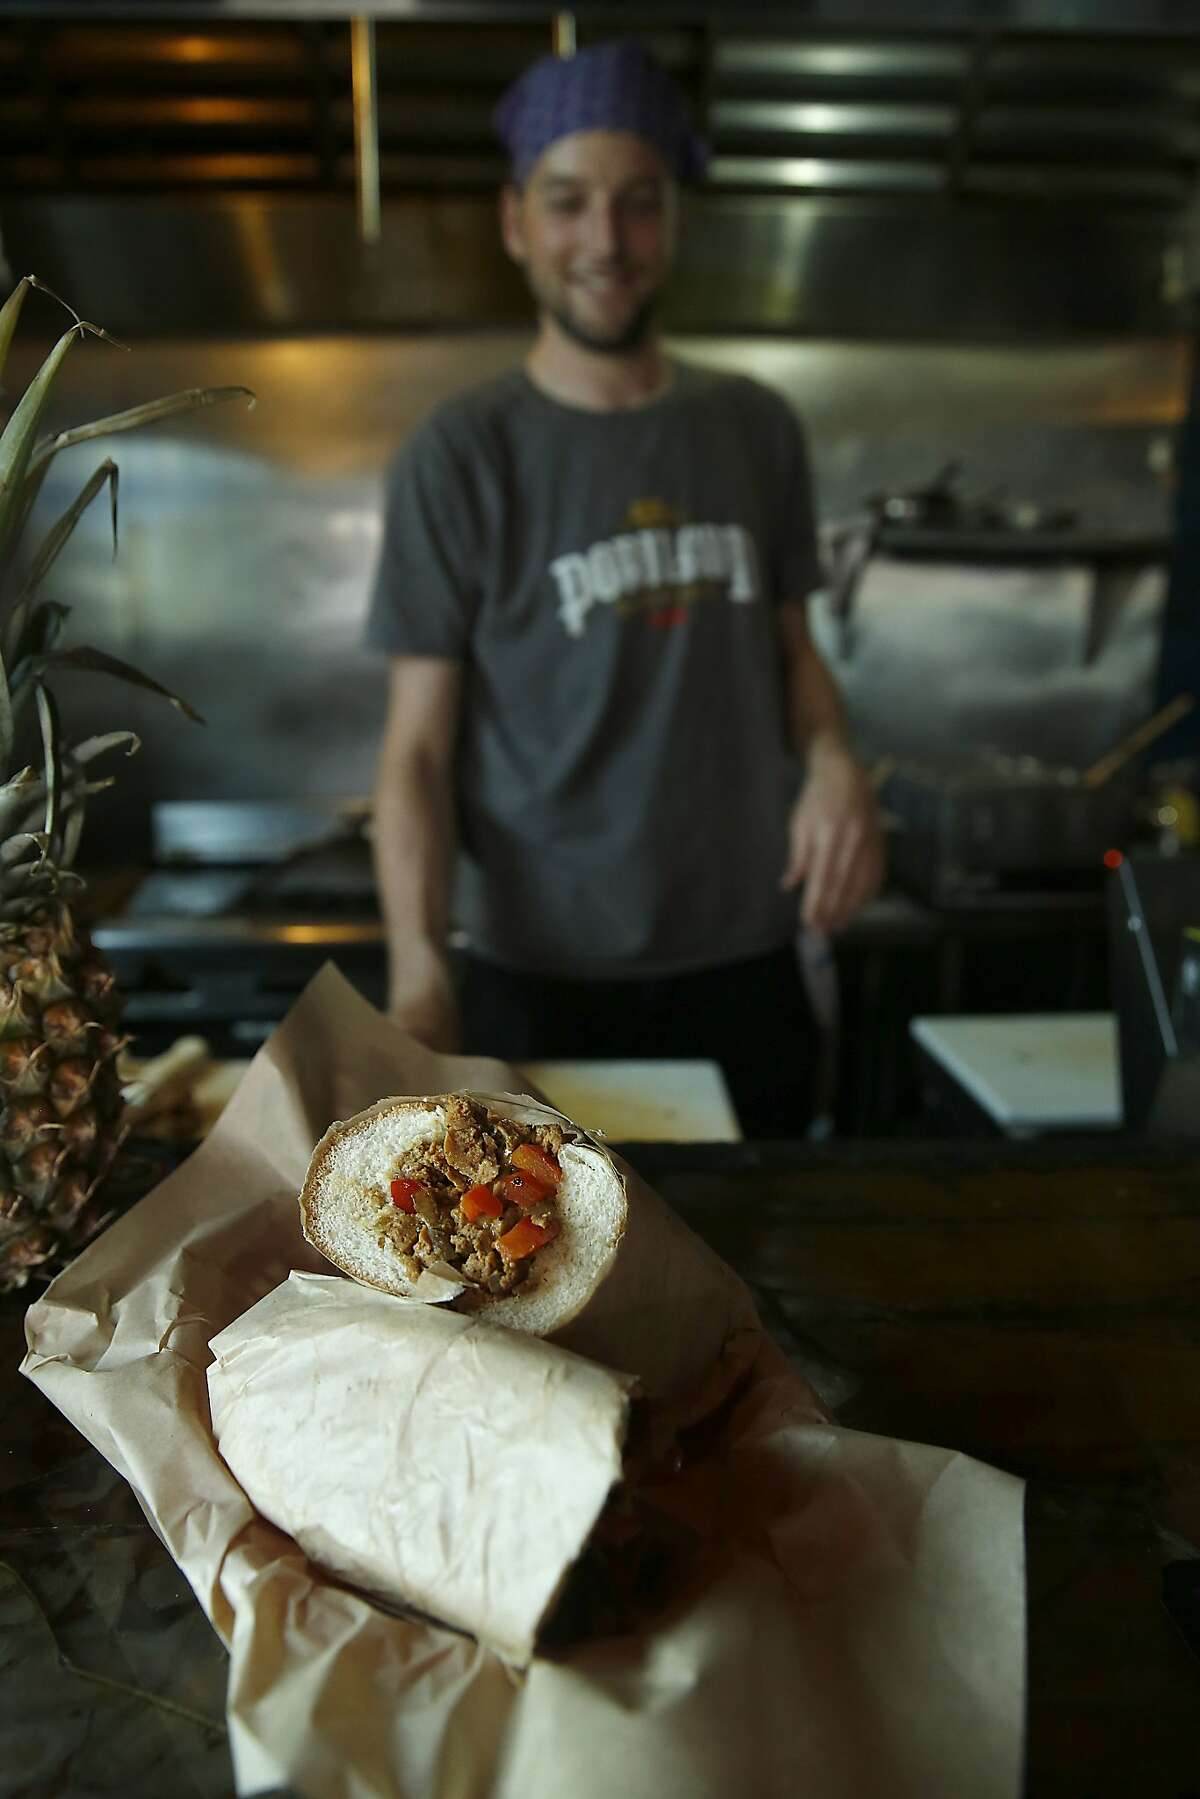 General manager and head chef Robby Harden (left) makes a Satan's Philly Cheese at Bender's Bar and Grill in San Francisco, California, on Tuesday, June 2, 2015.